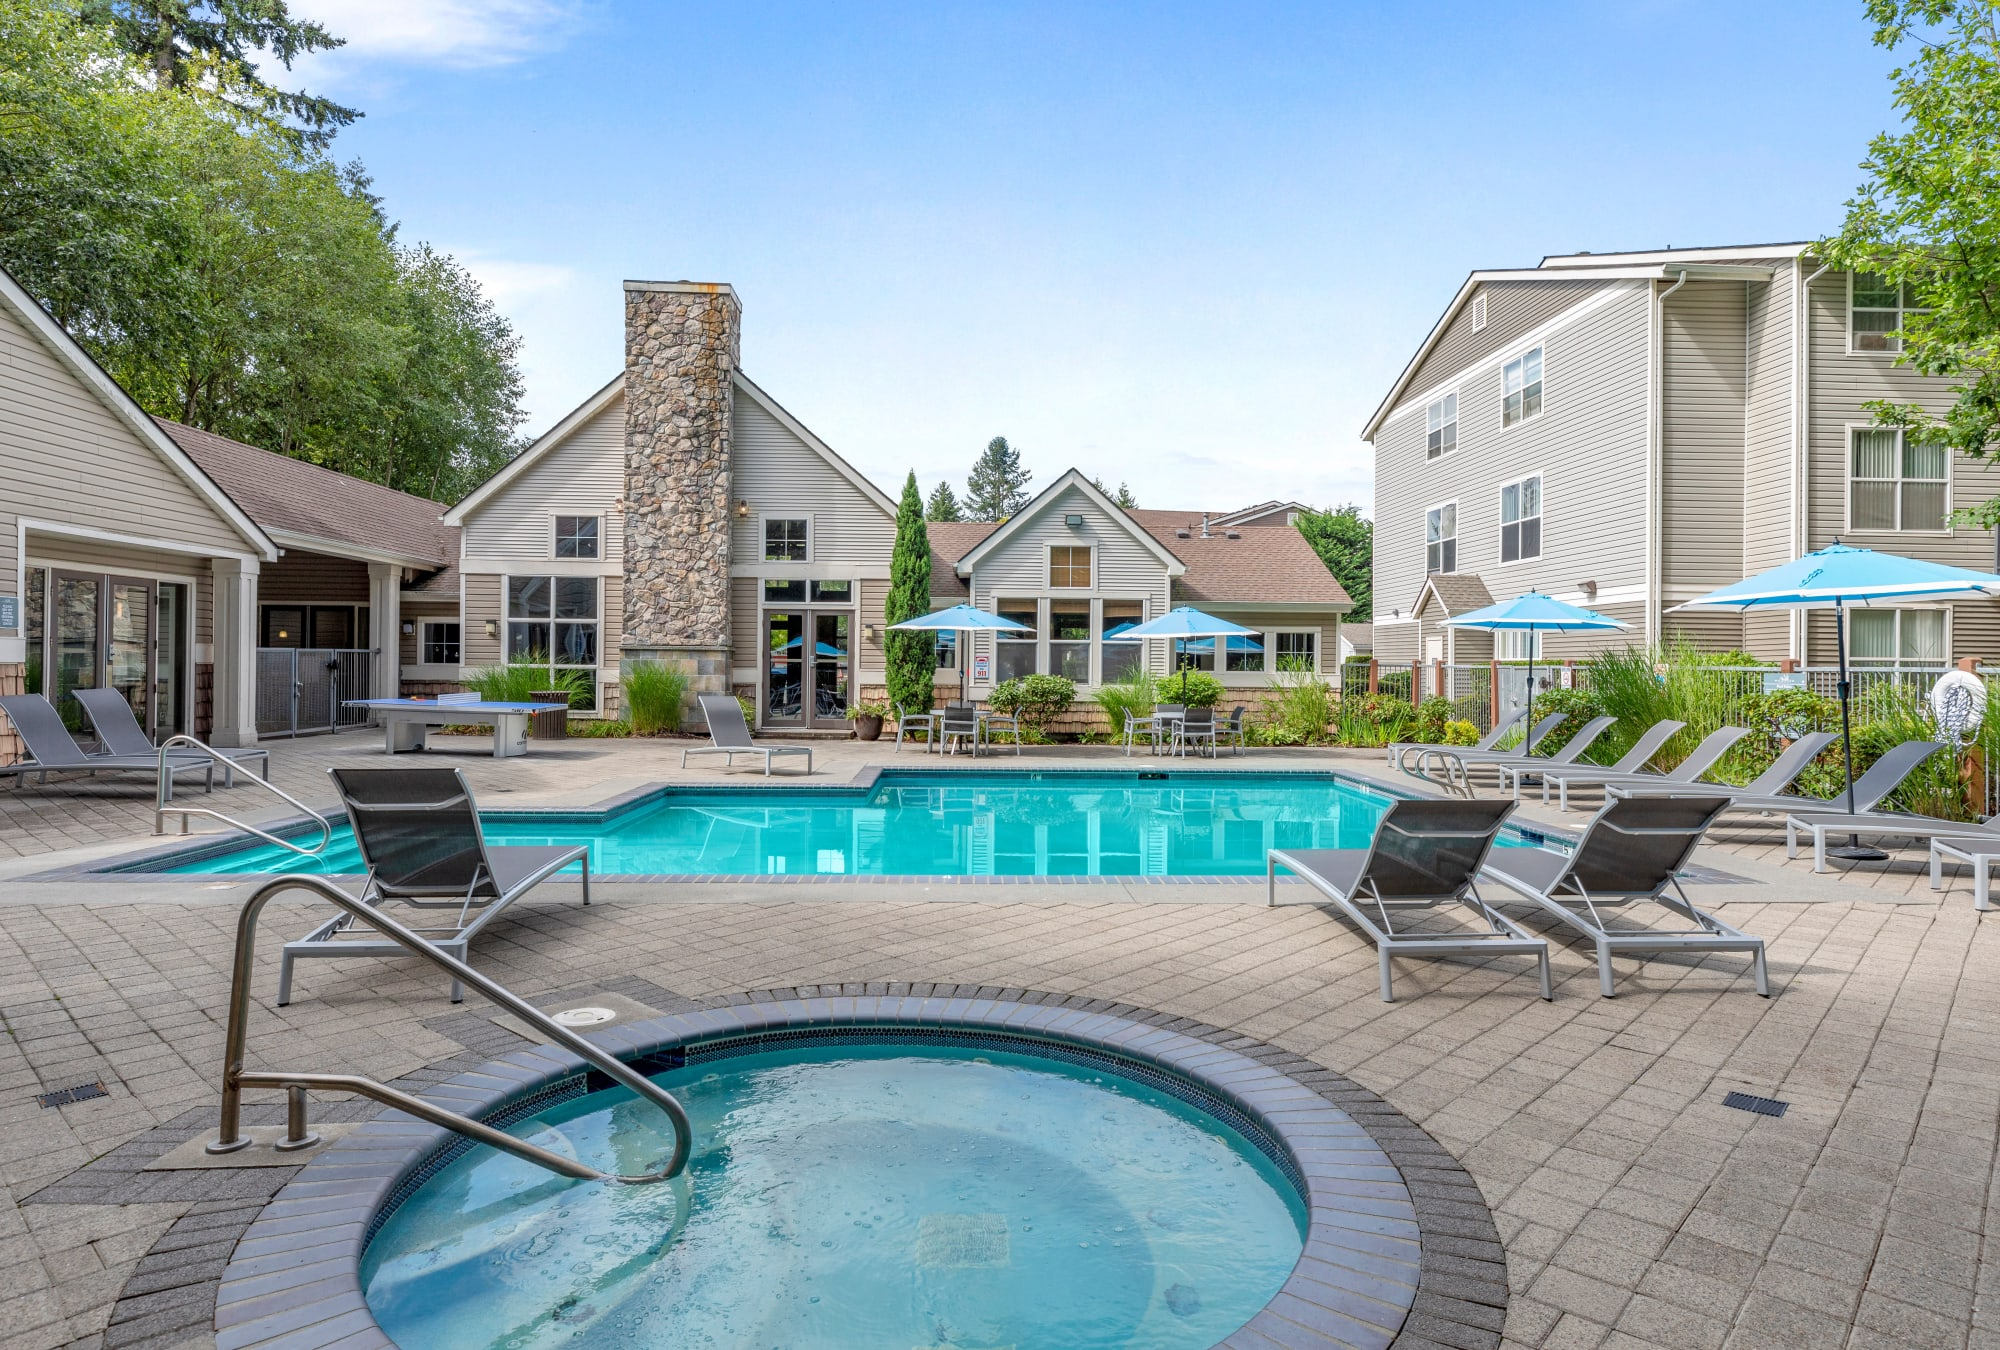 Pool view with Ping Pong Table and Lounge Chairs at Wildreed Apartments in Everett, WA